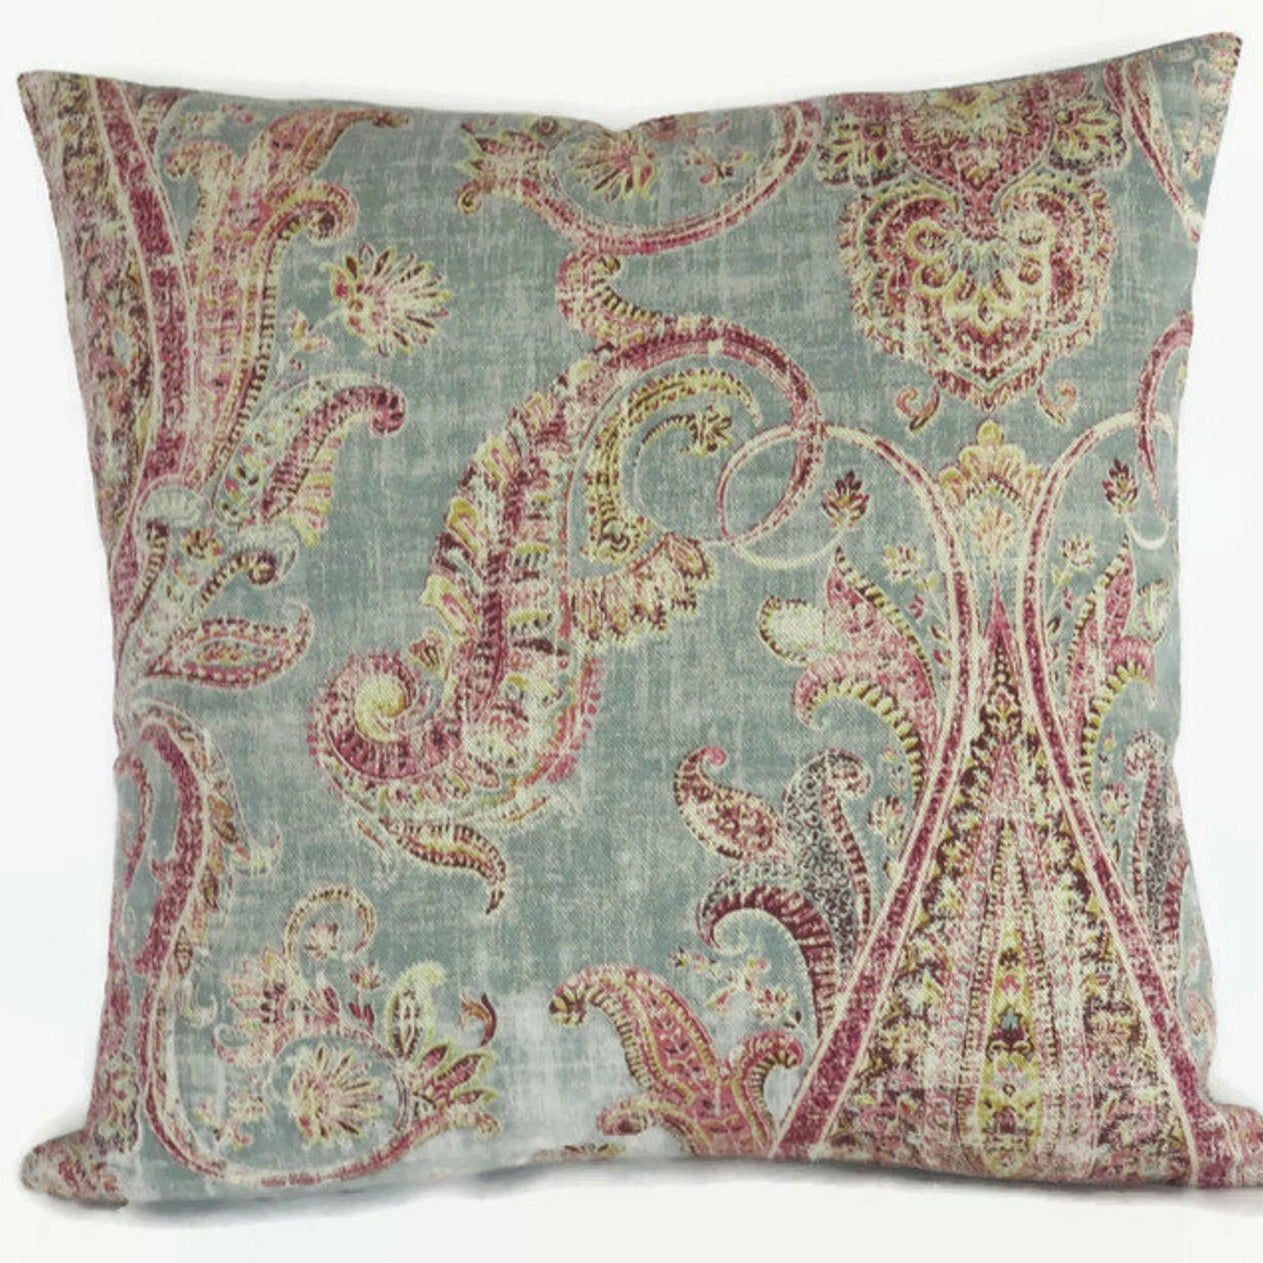 Teal & Pink Paisley Pillow Cover,  P. Kaufmann Fair Trade  Breeze